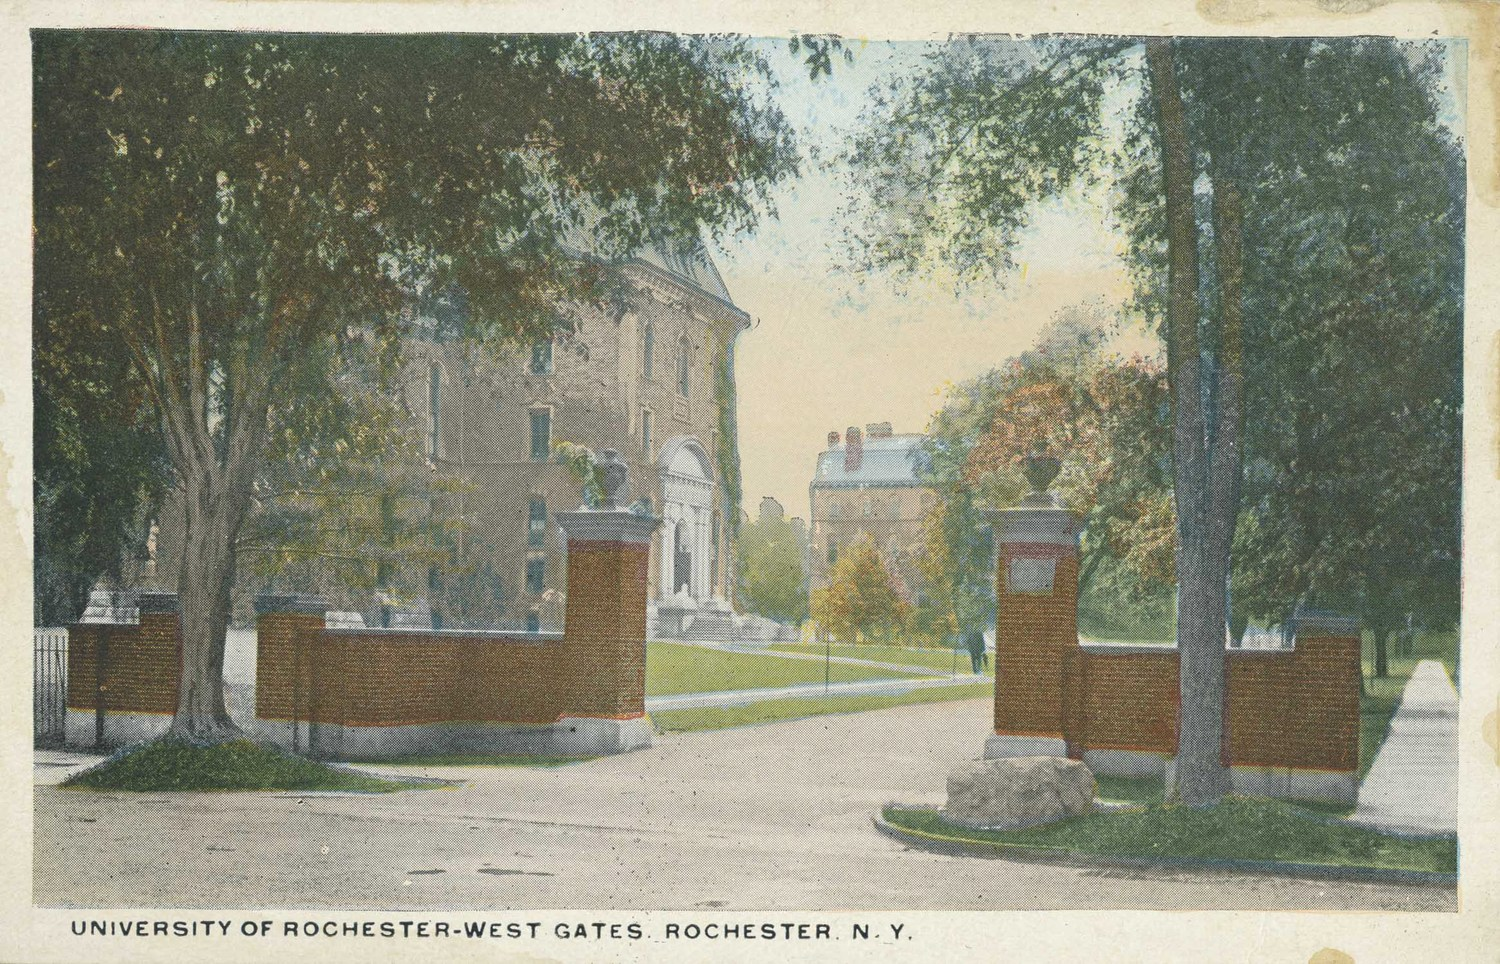 University of Rochester–West Gates. Rochester. N.Y.